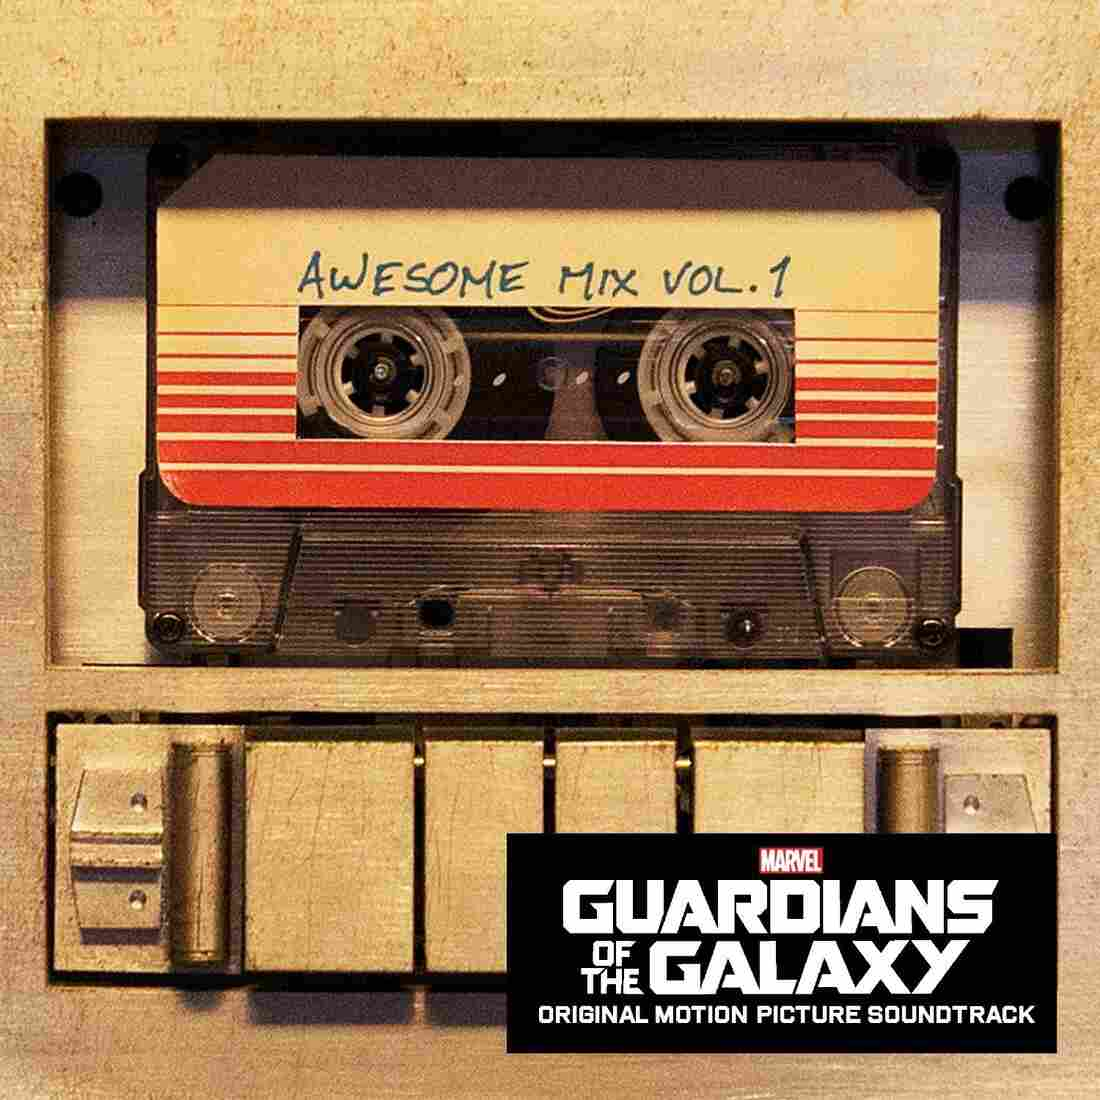 The soundtrack to Guardians of the Galaxy was the first soundtrack composed entirely of previously released songs to top the Billboard 200 album chart.